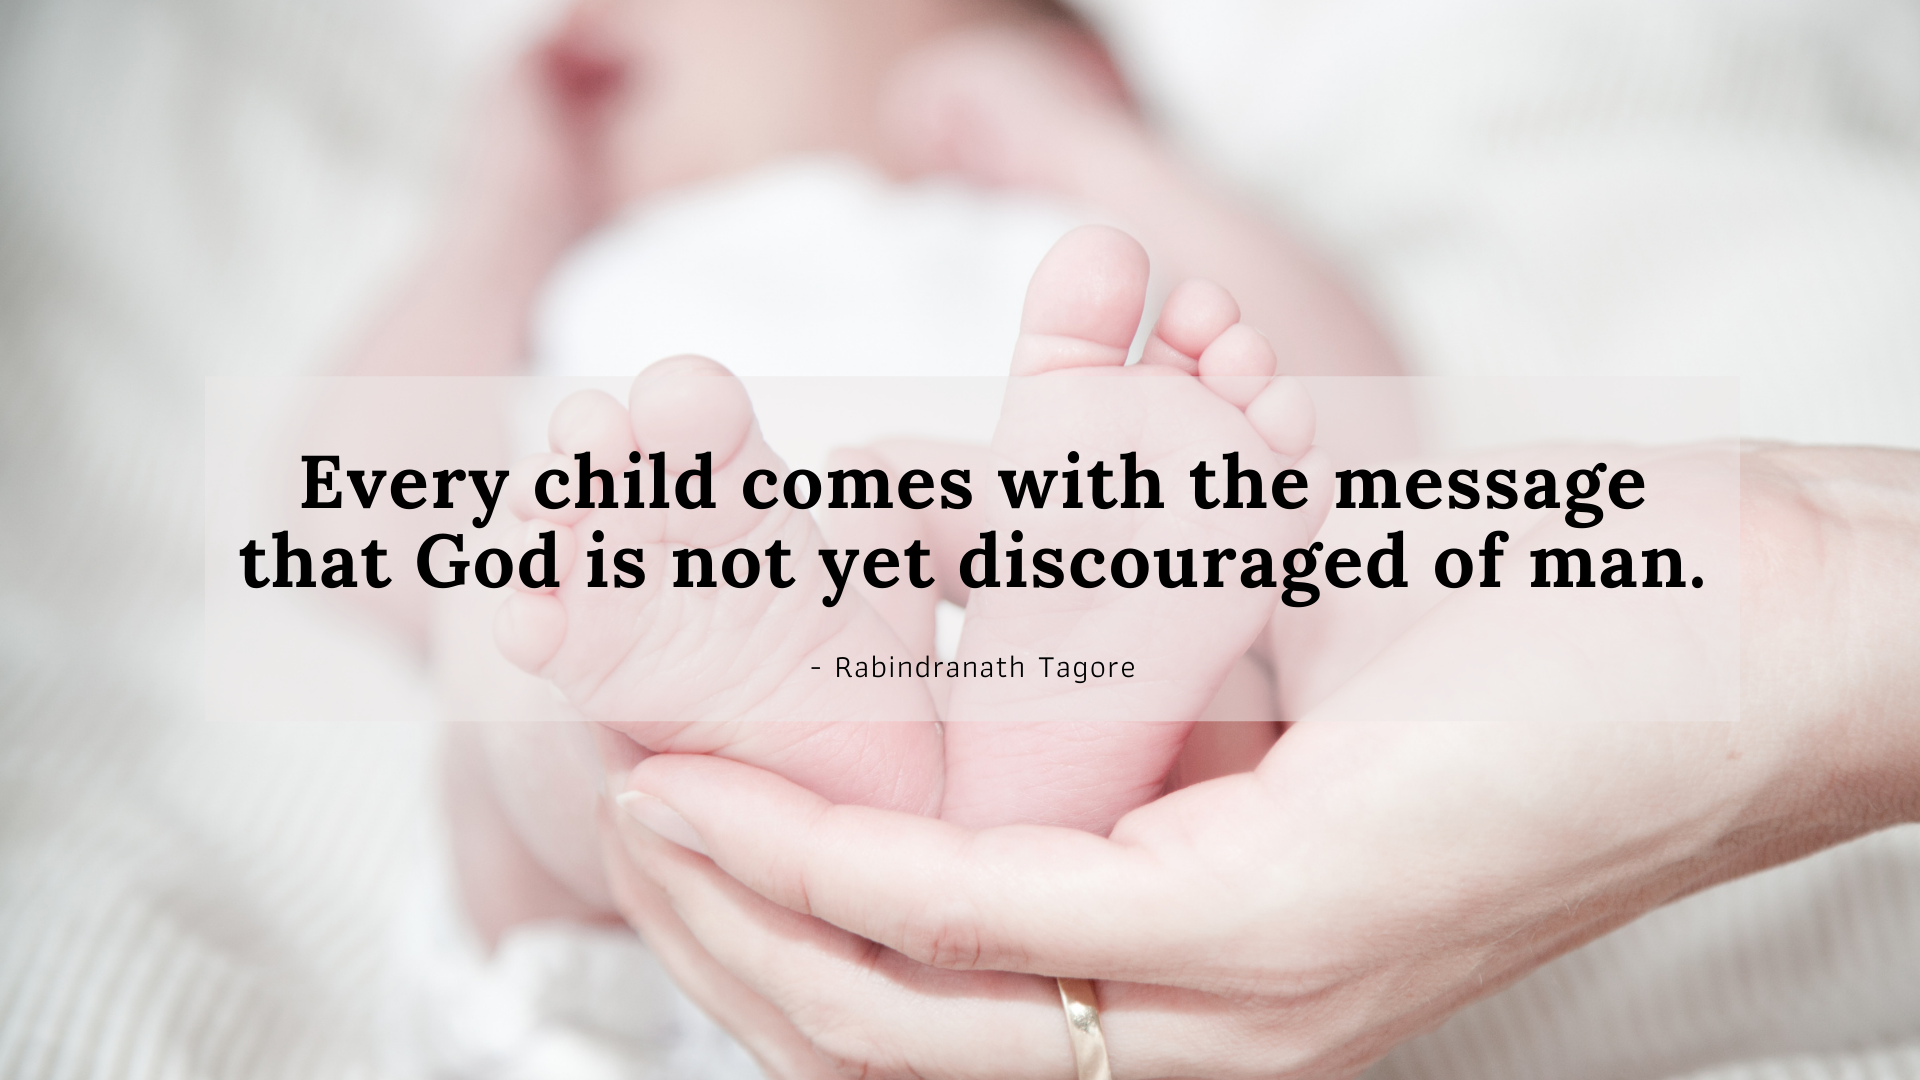 Every child comes with the message that God is not yet discouraged of man. – Rabindranath Tagore[1920×1080]